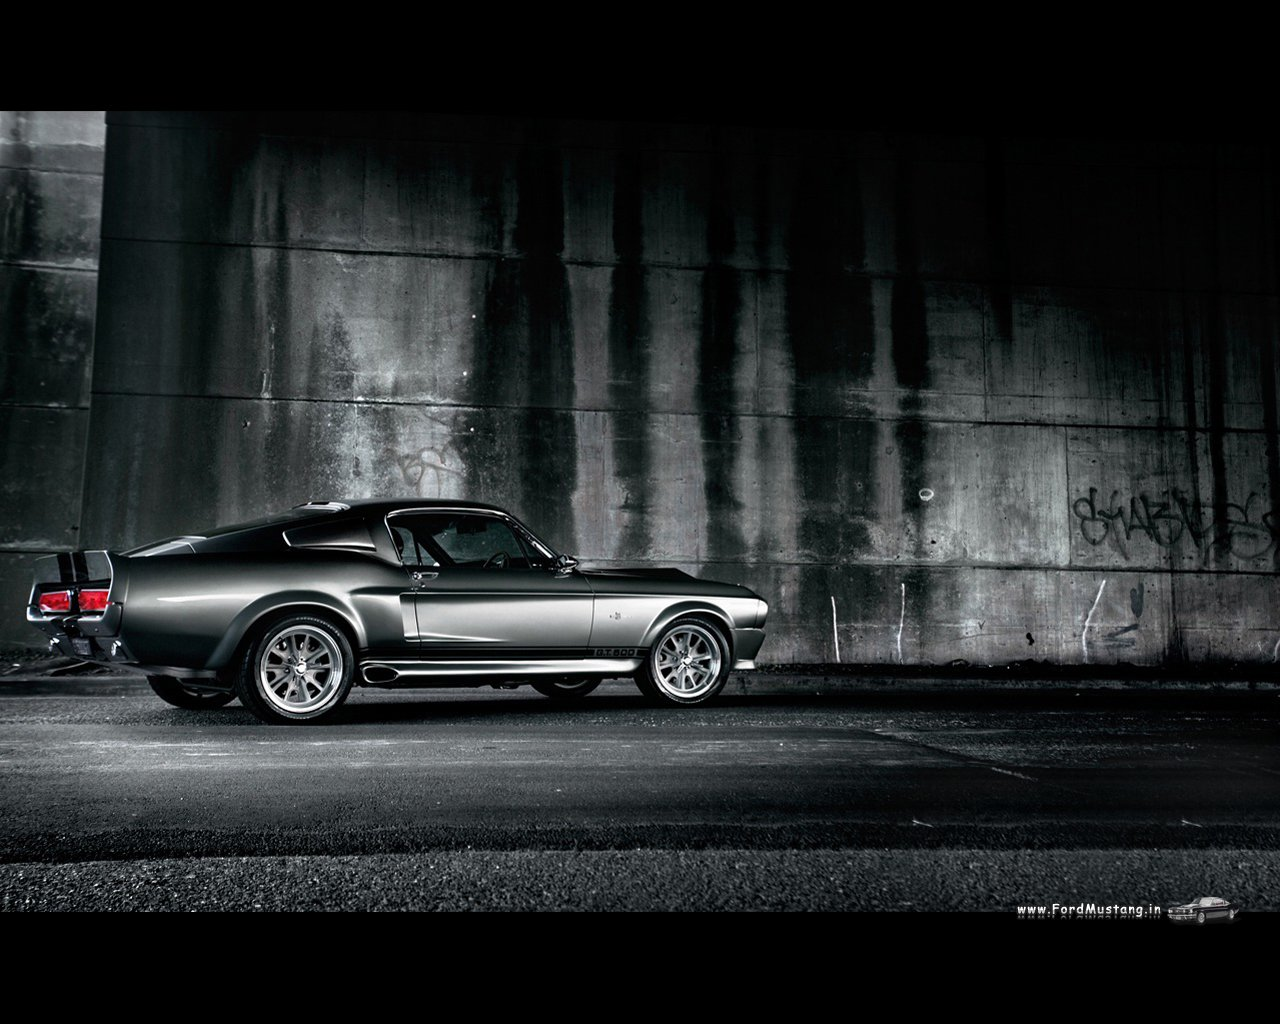 Ford mustang shelby gt500 eleanor status cars 1280x1024